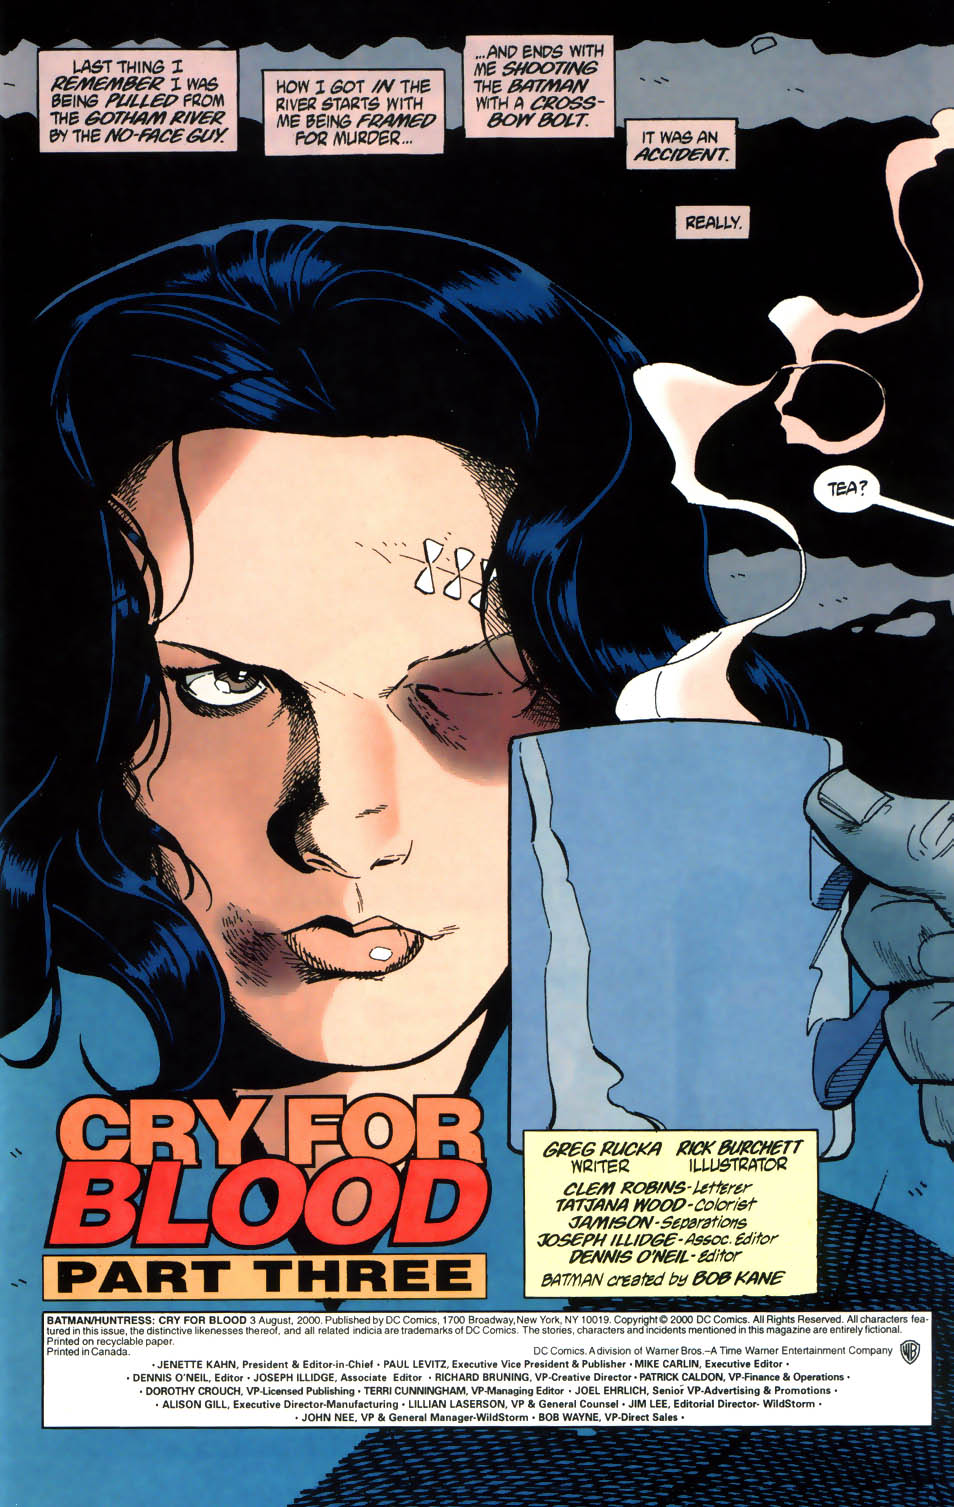 Read online Batman/Huntress: Cry for Blood comic -  Issue #3 - 2